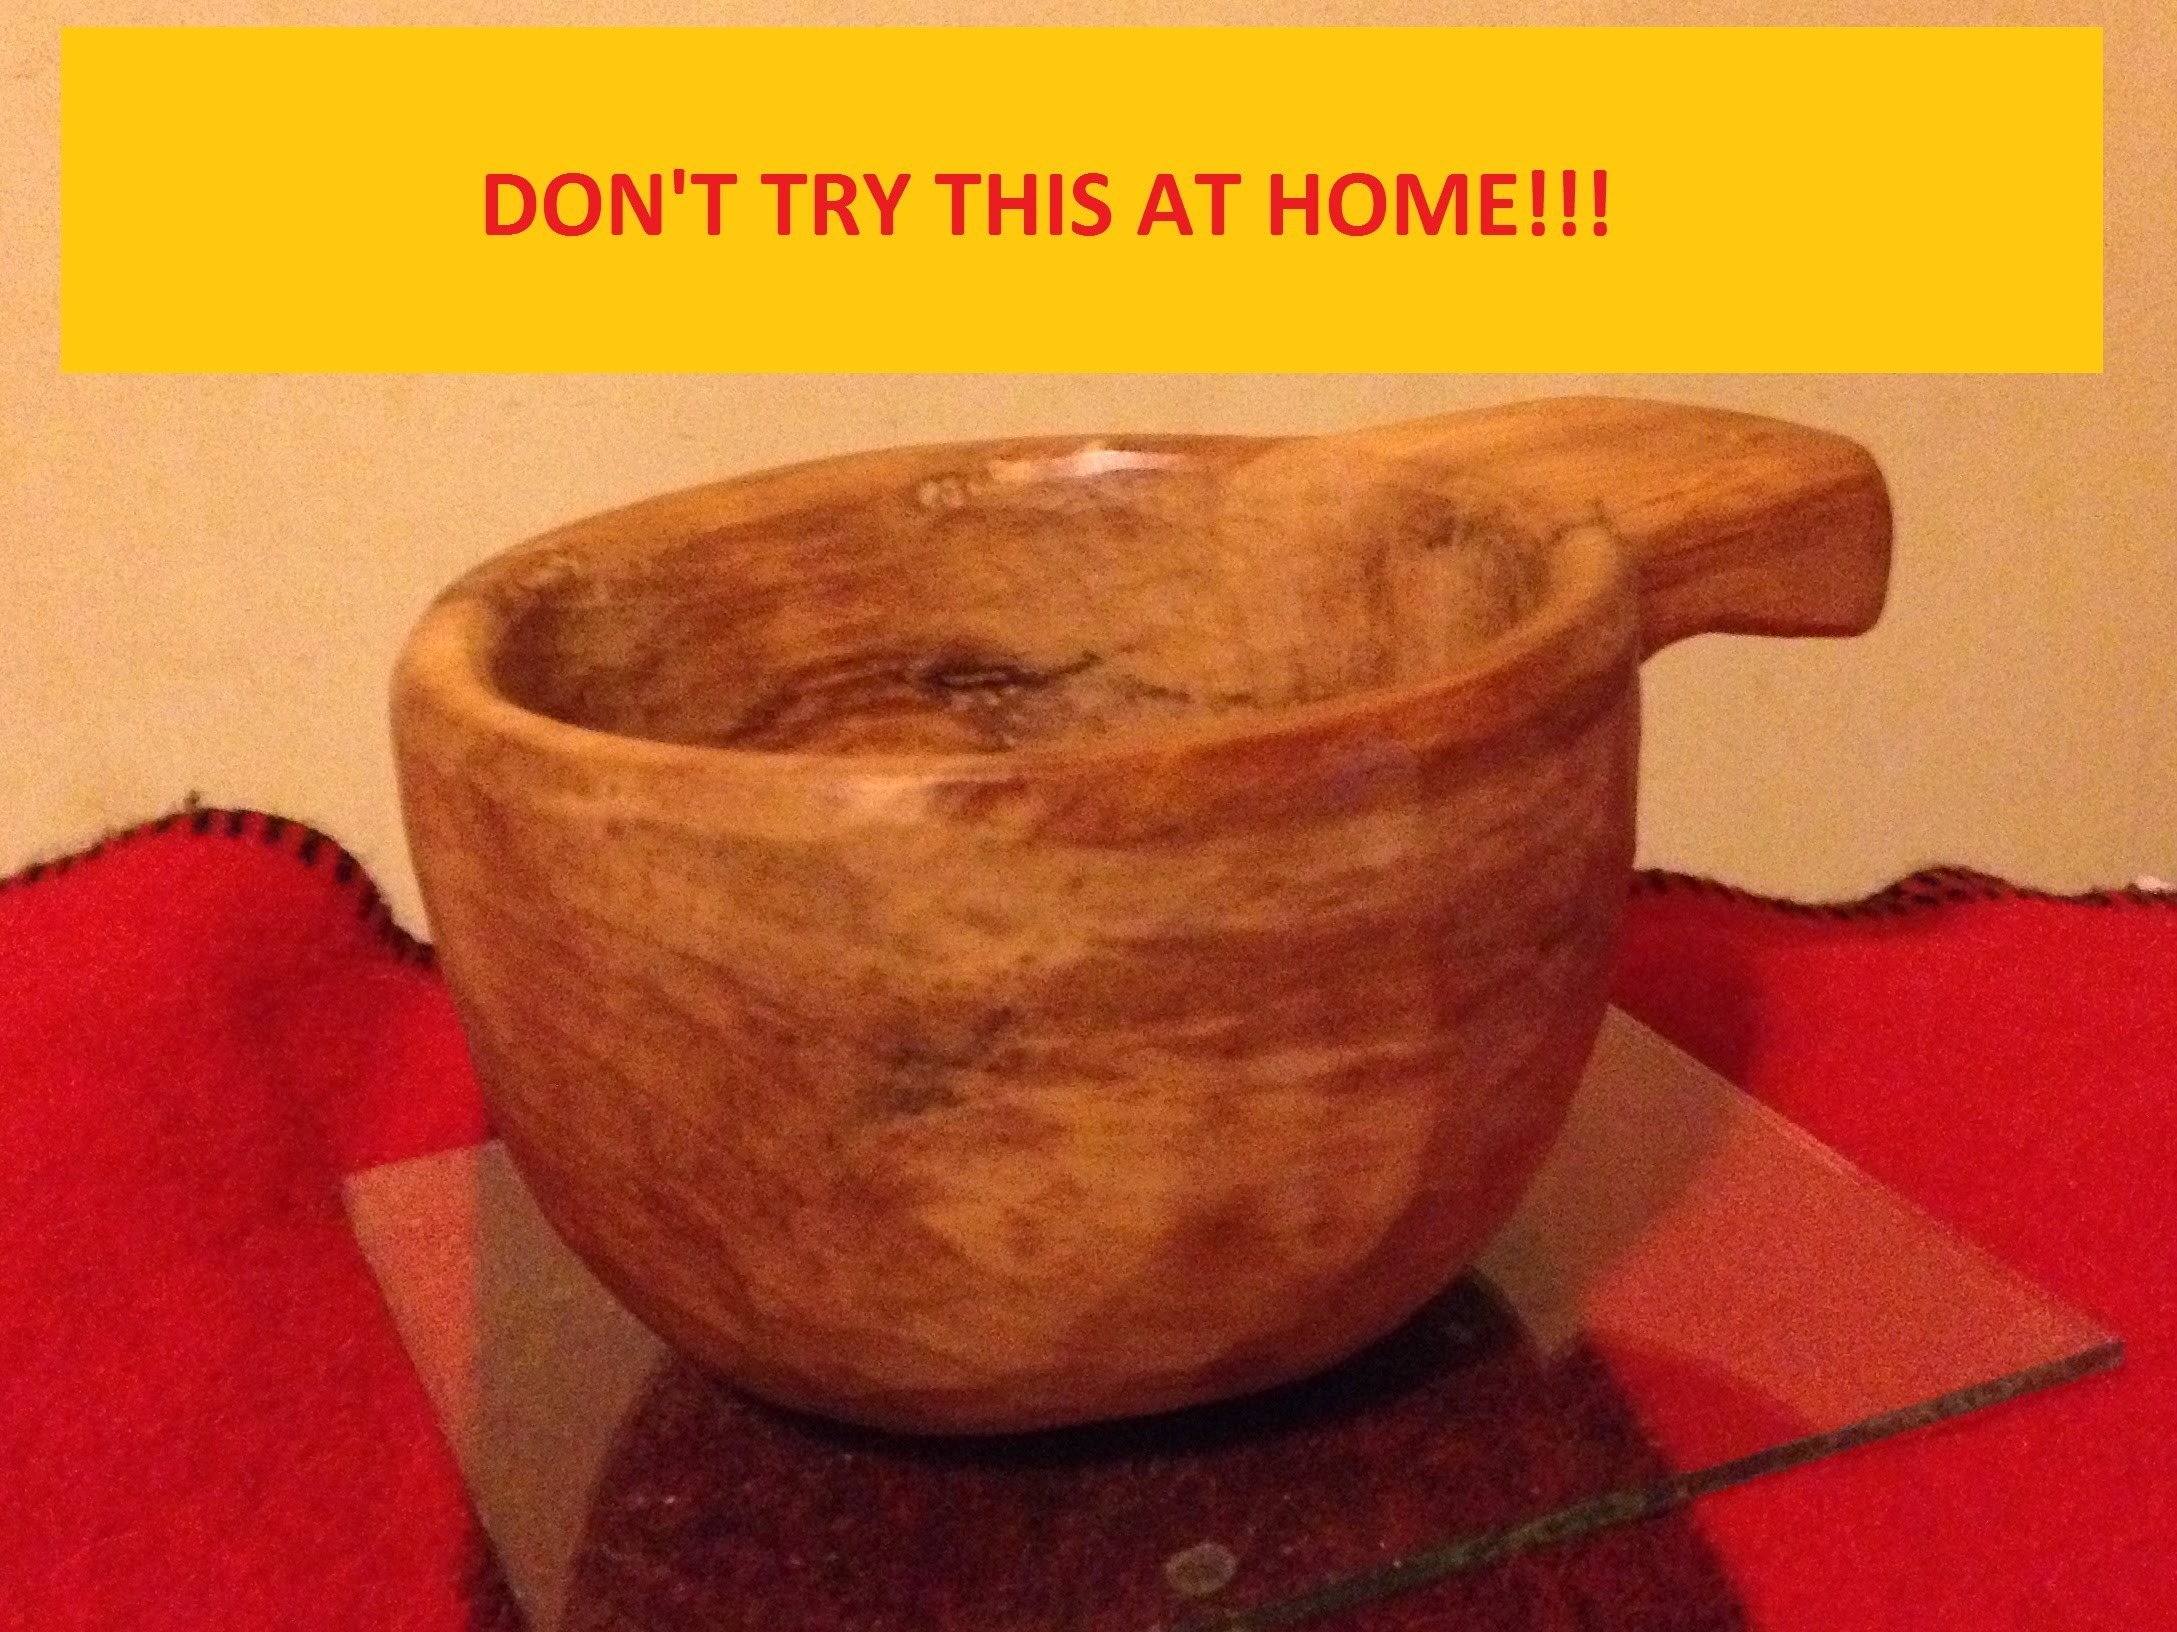 How To Implode A Kuksa! ;- ) WARNING: DON'T TRY THIS AT HOME!!!